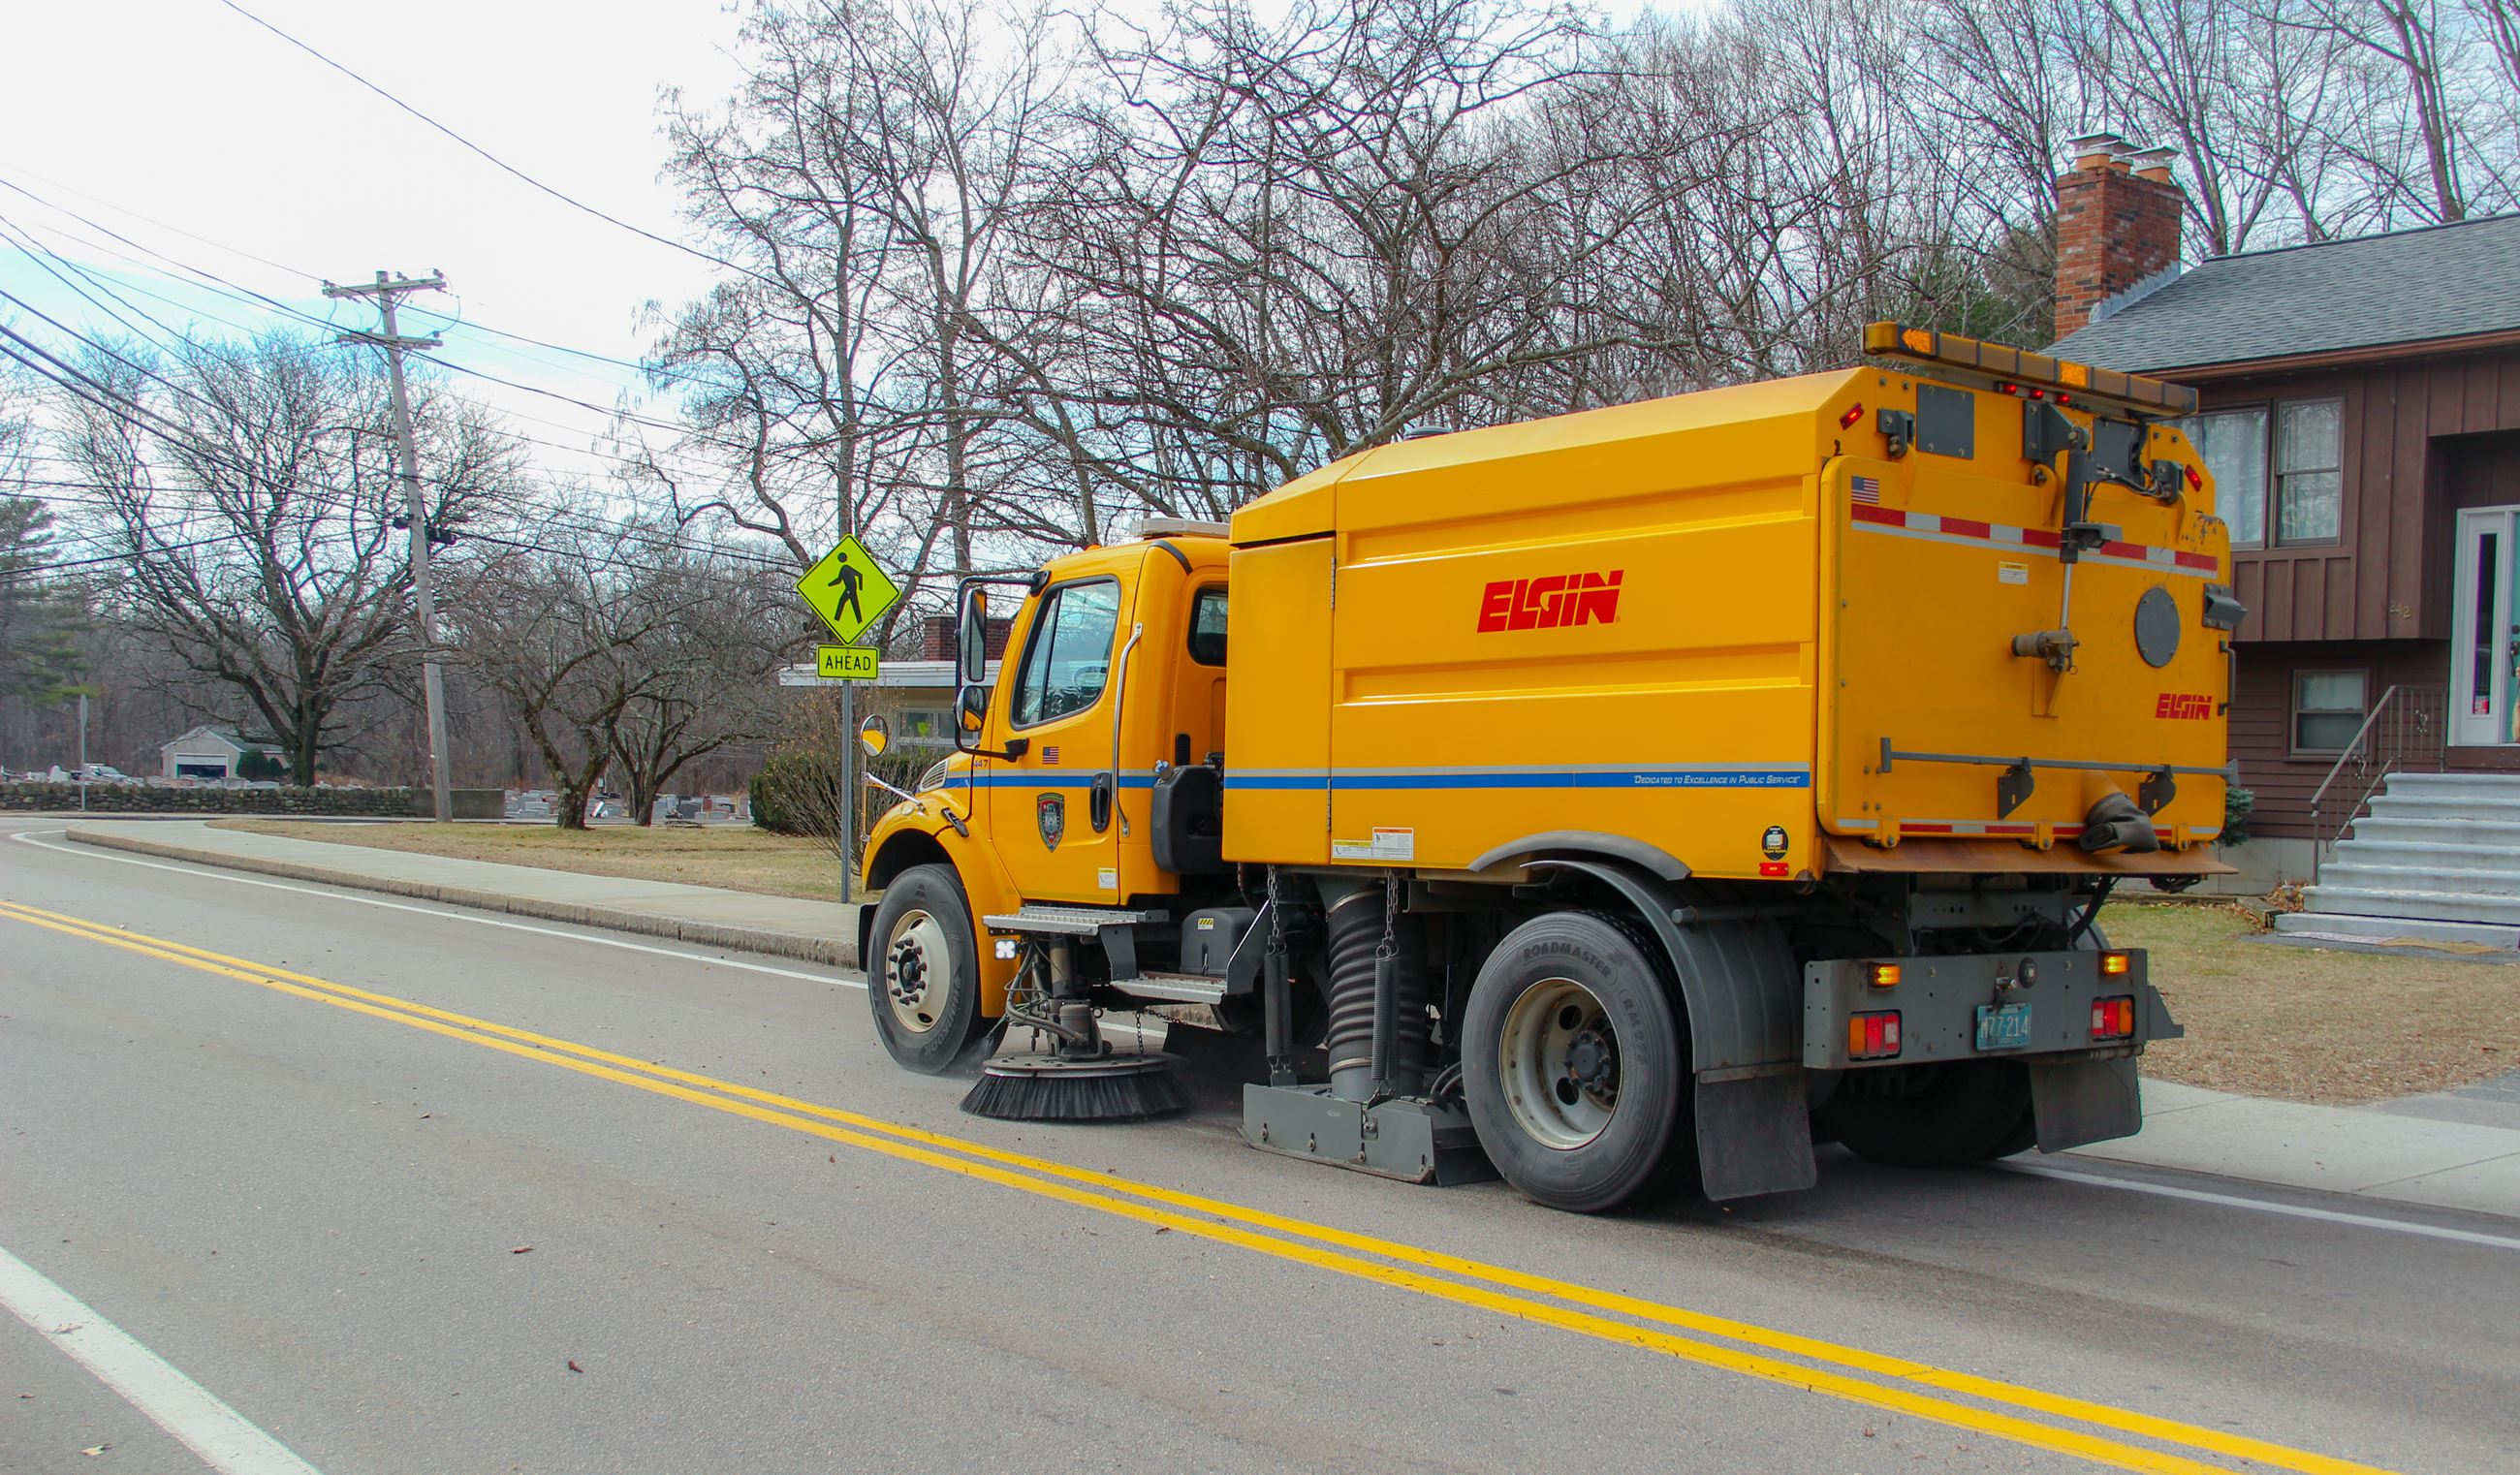 Photo of a yellow DPW Street Sweeper cleaning the road